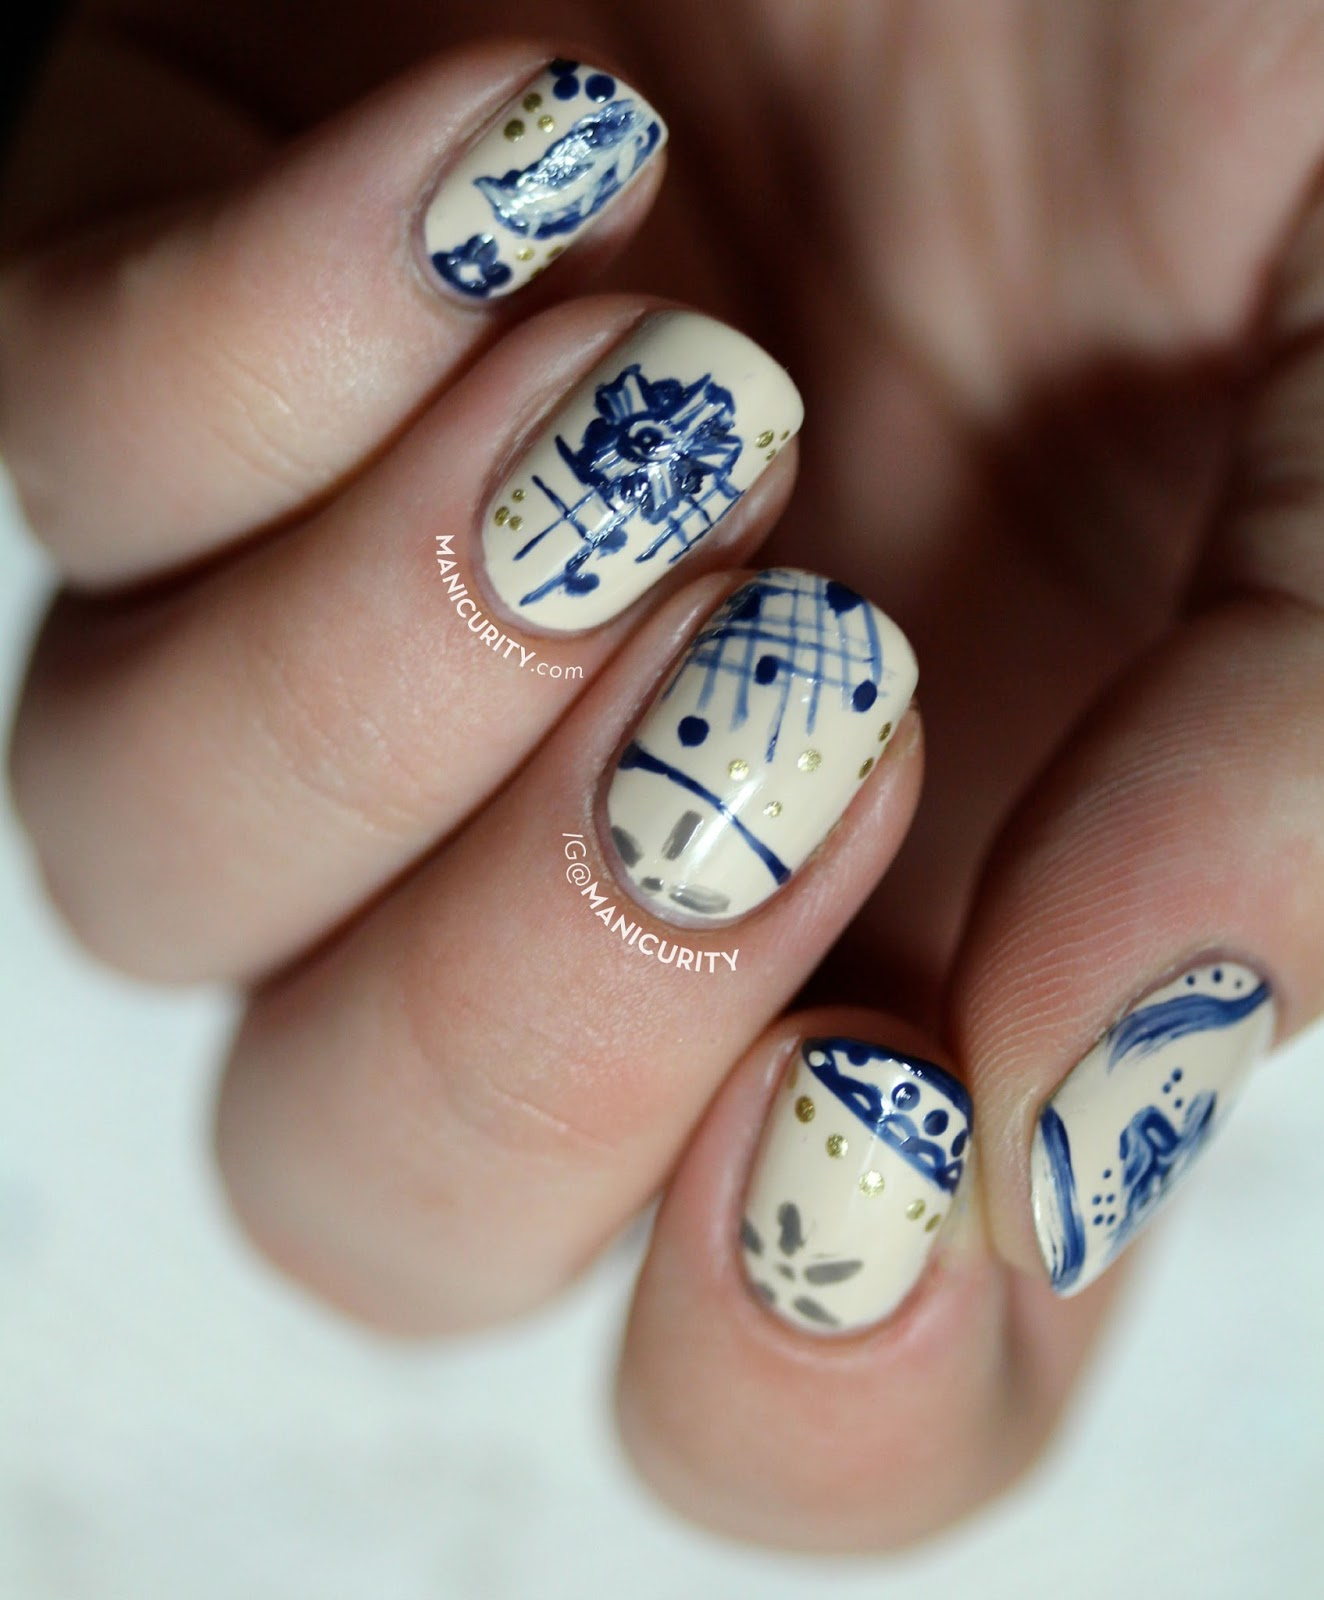 Beautiful Freehand Nail Art Design 3 Crest - Nail Art Ideas ...